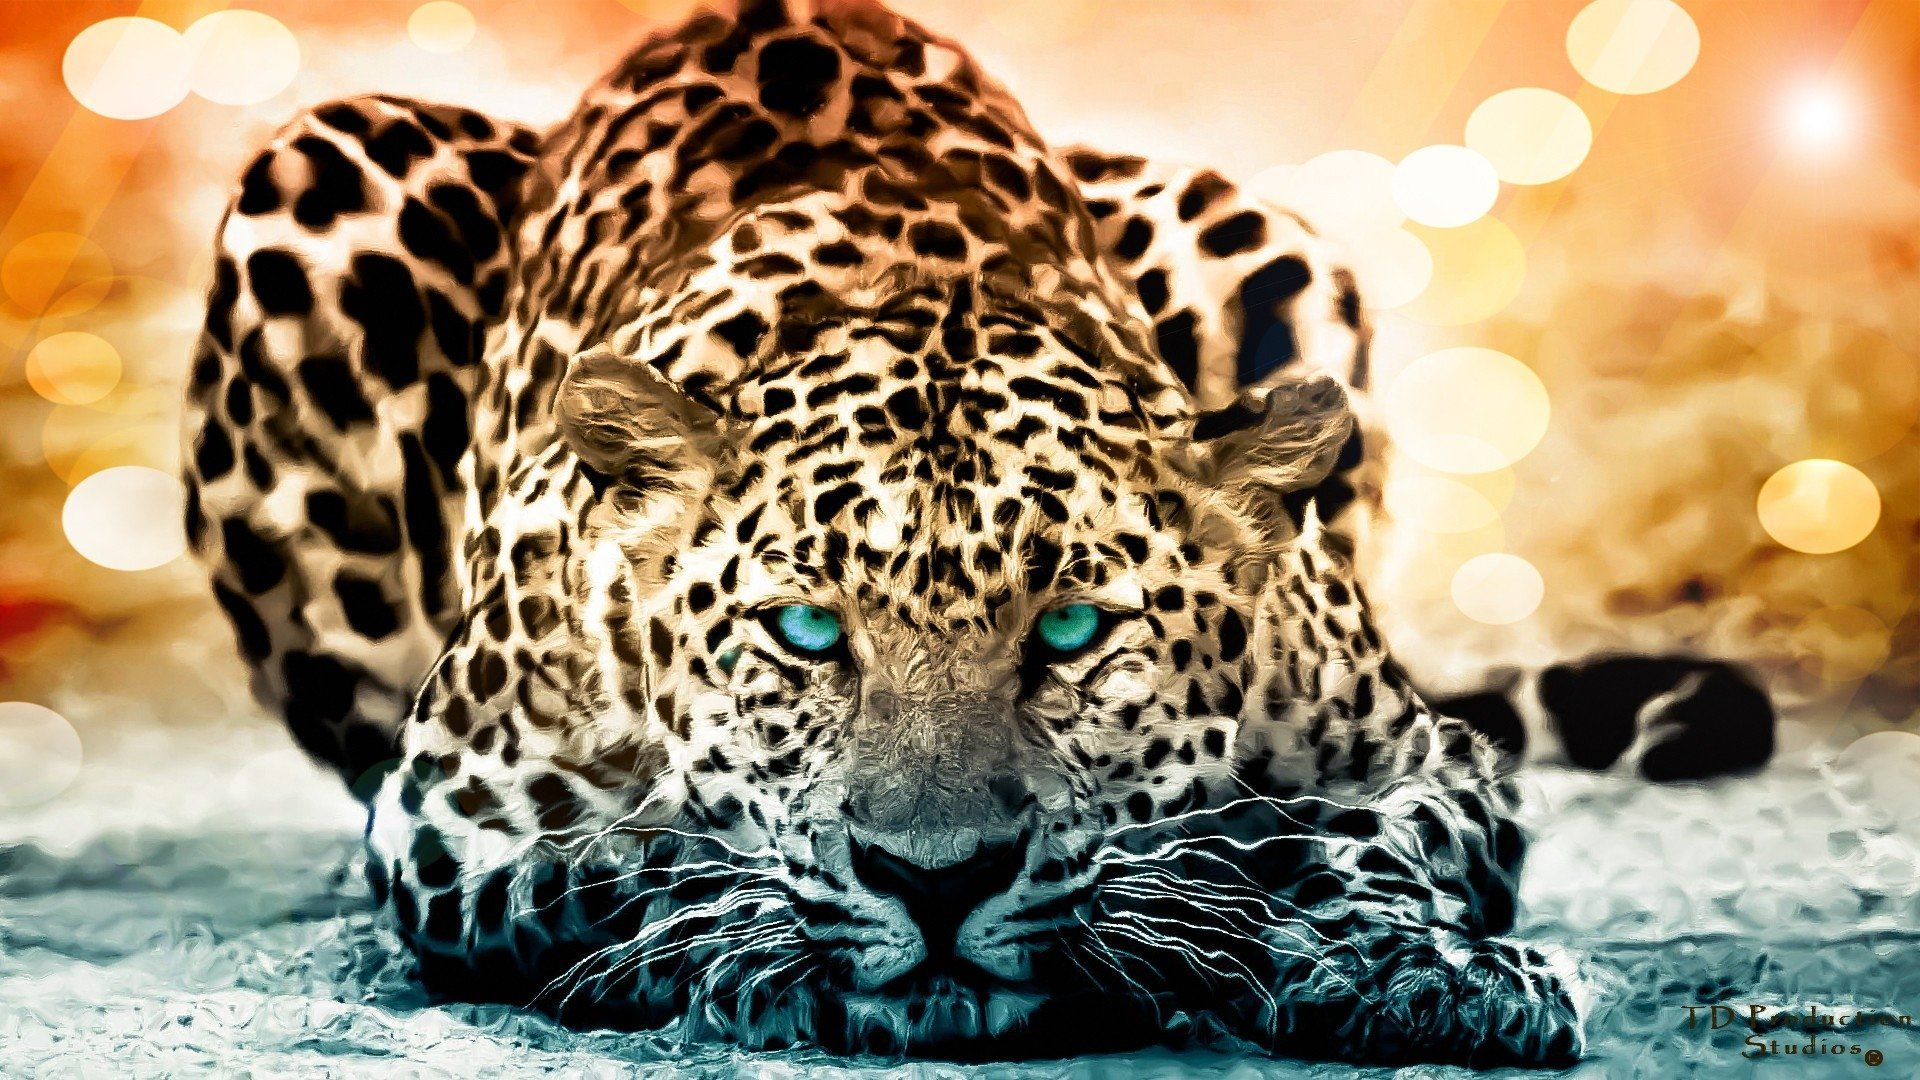 190 jaguar hd wallpapers backgrounds wallpaper abyss - Jaguar animal hd wallpapers ...